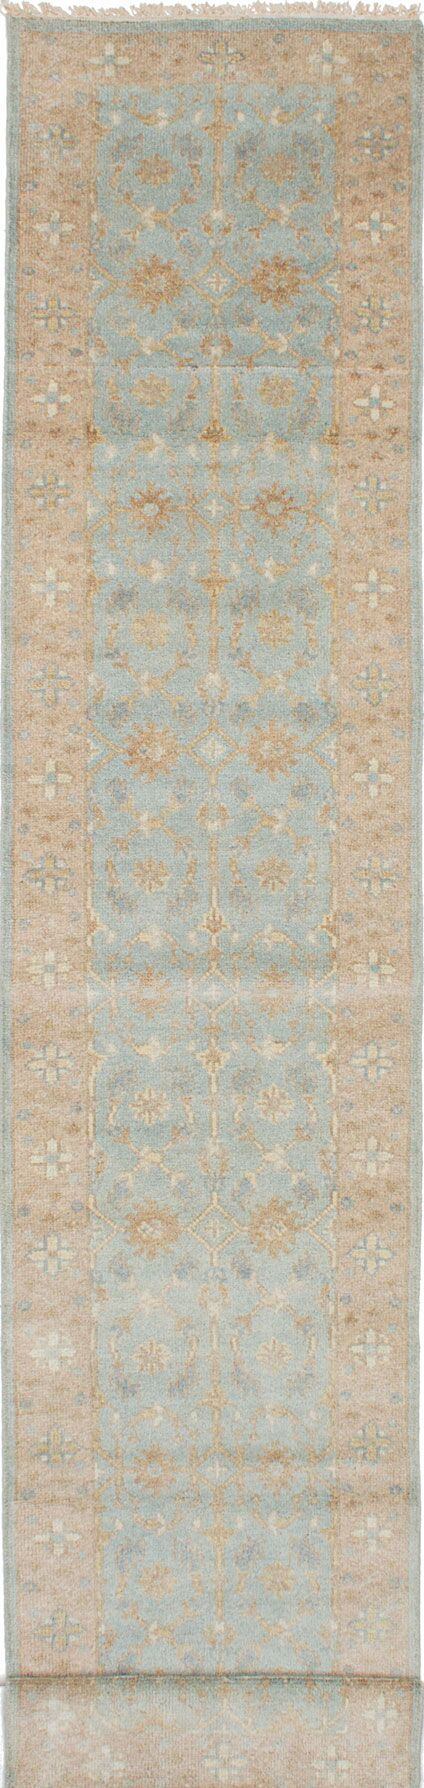 One-of-a-Kind Doggett Hand-Knotted Beige/Blue Area Rug